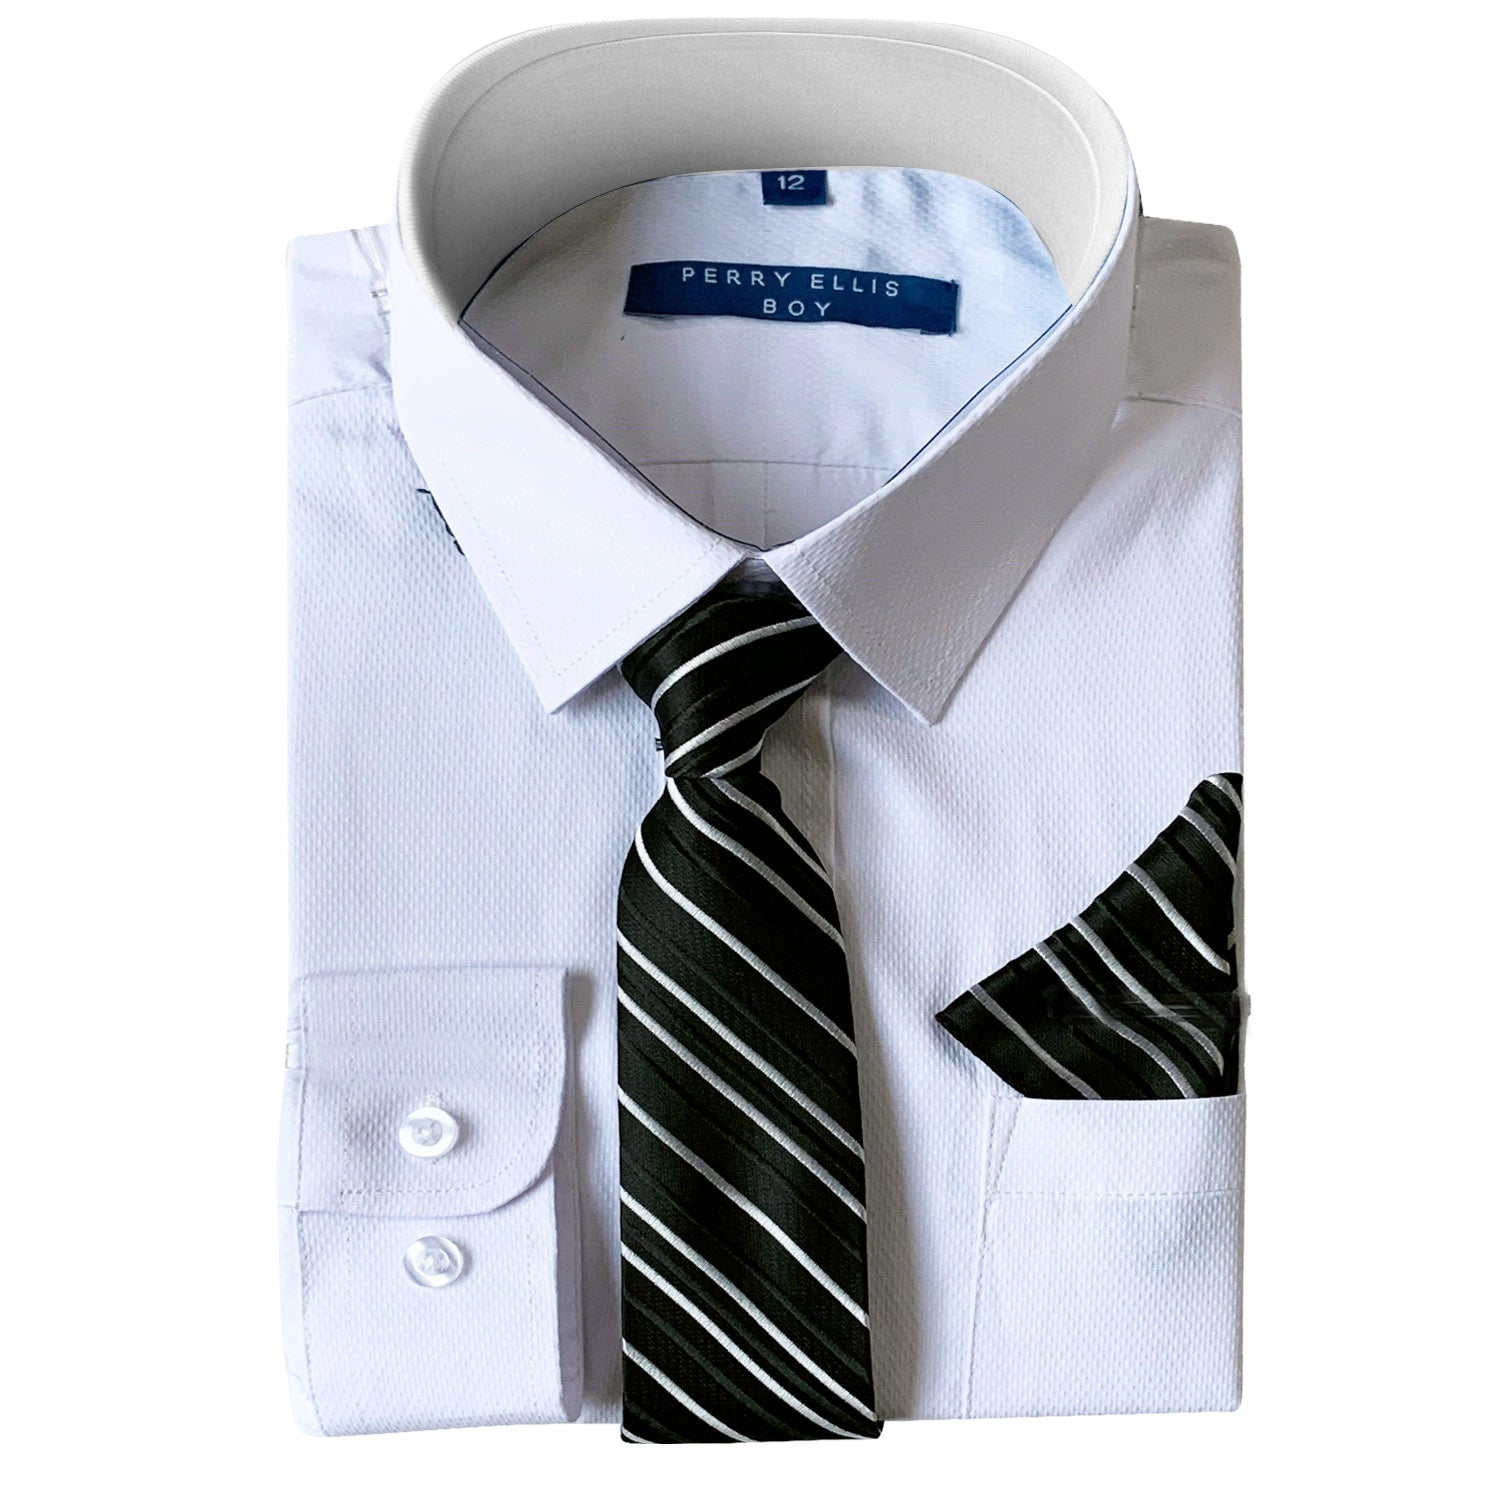 Perry Ellis Boys Dress Shirts w Black Tie Solid Shirts w Patterned Tie